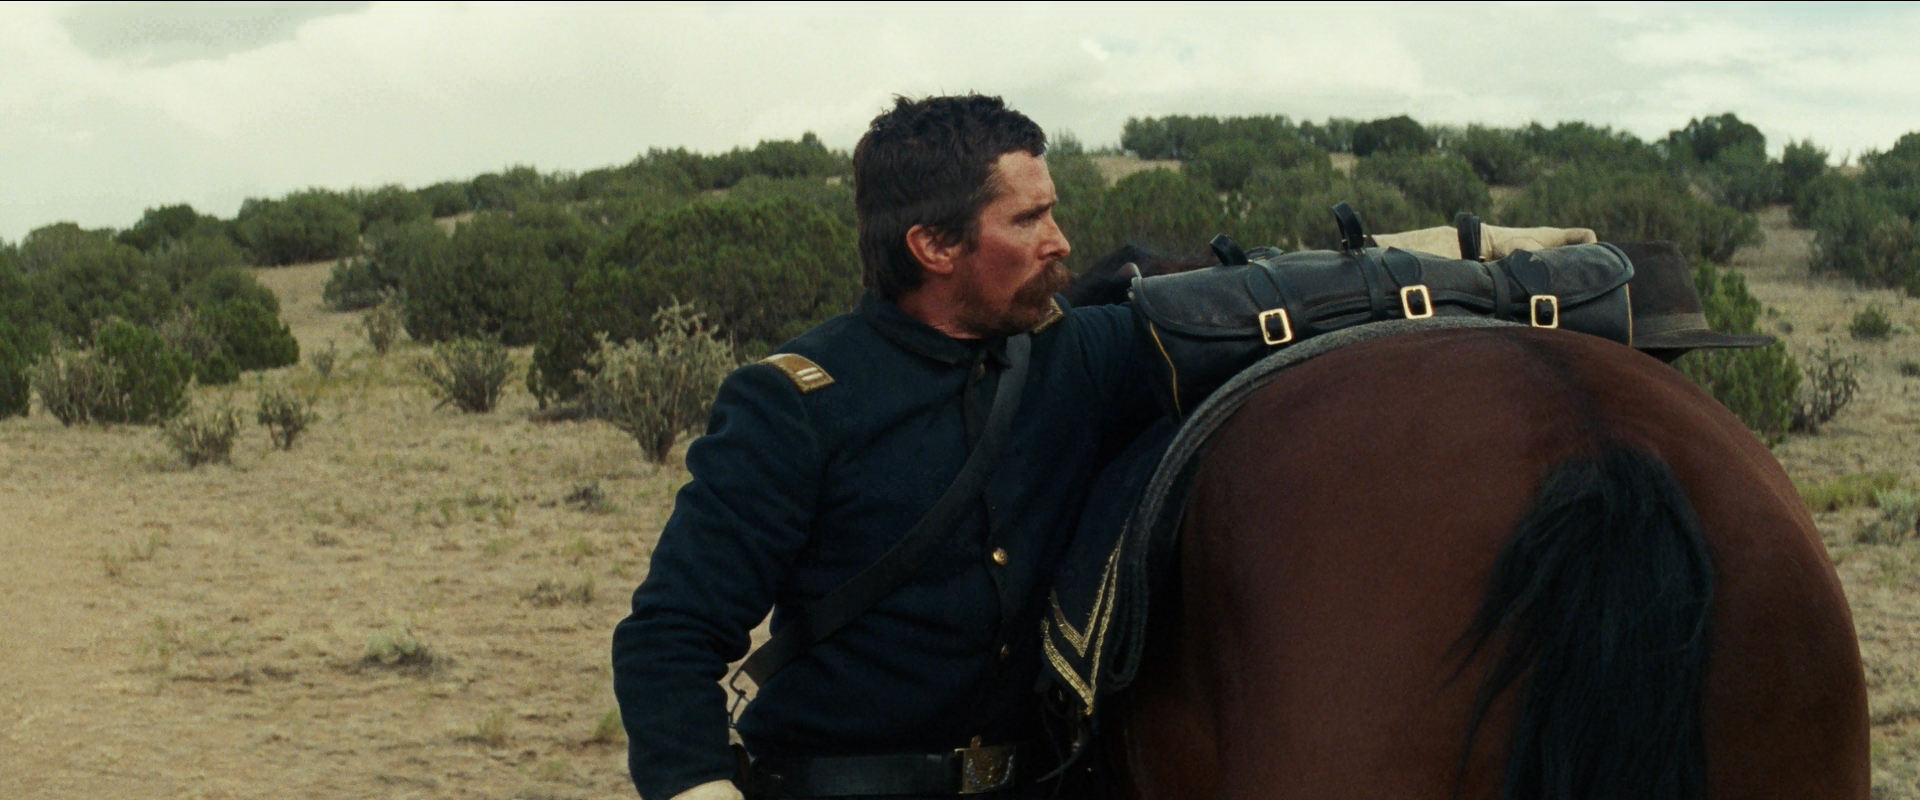 Недруги / Hostiles (2017) WEB-DL 1080p